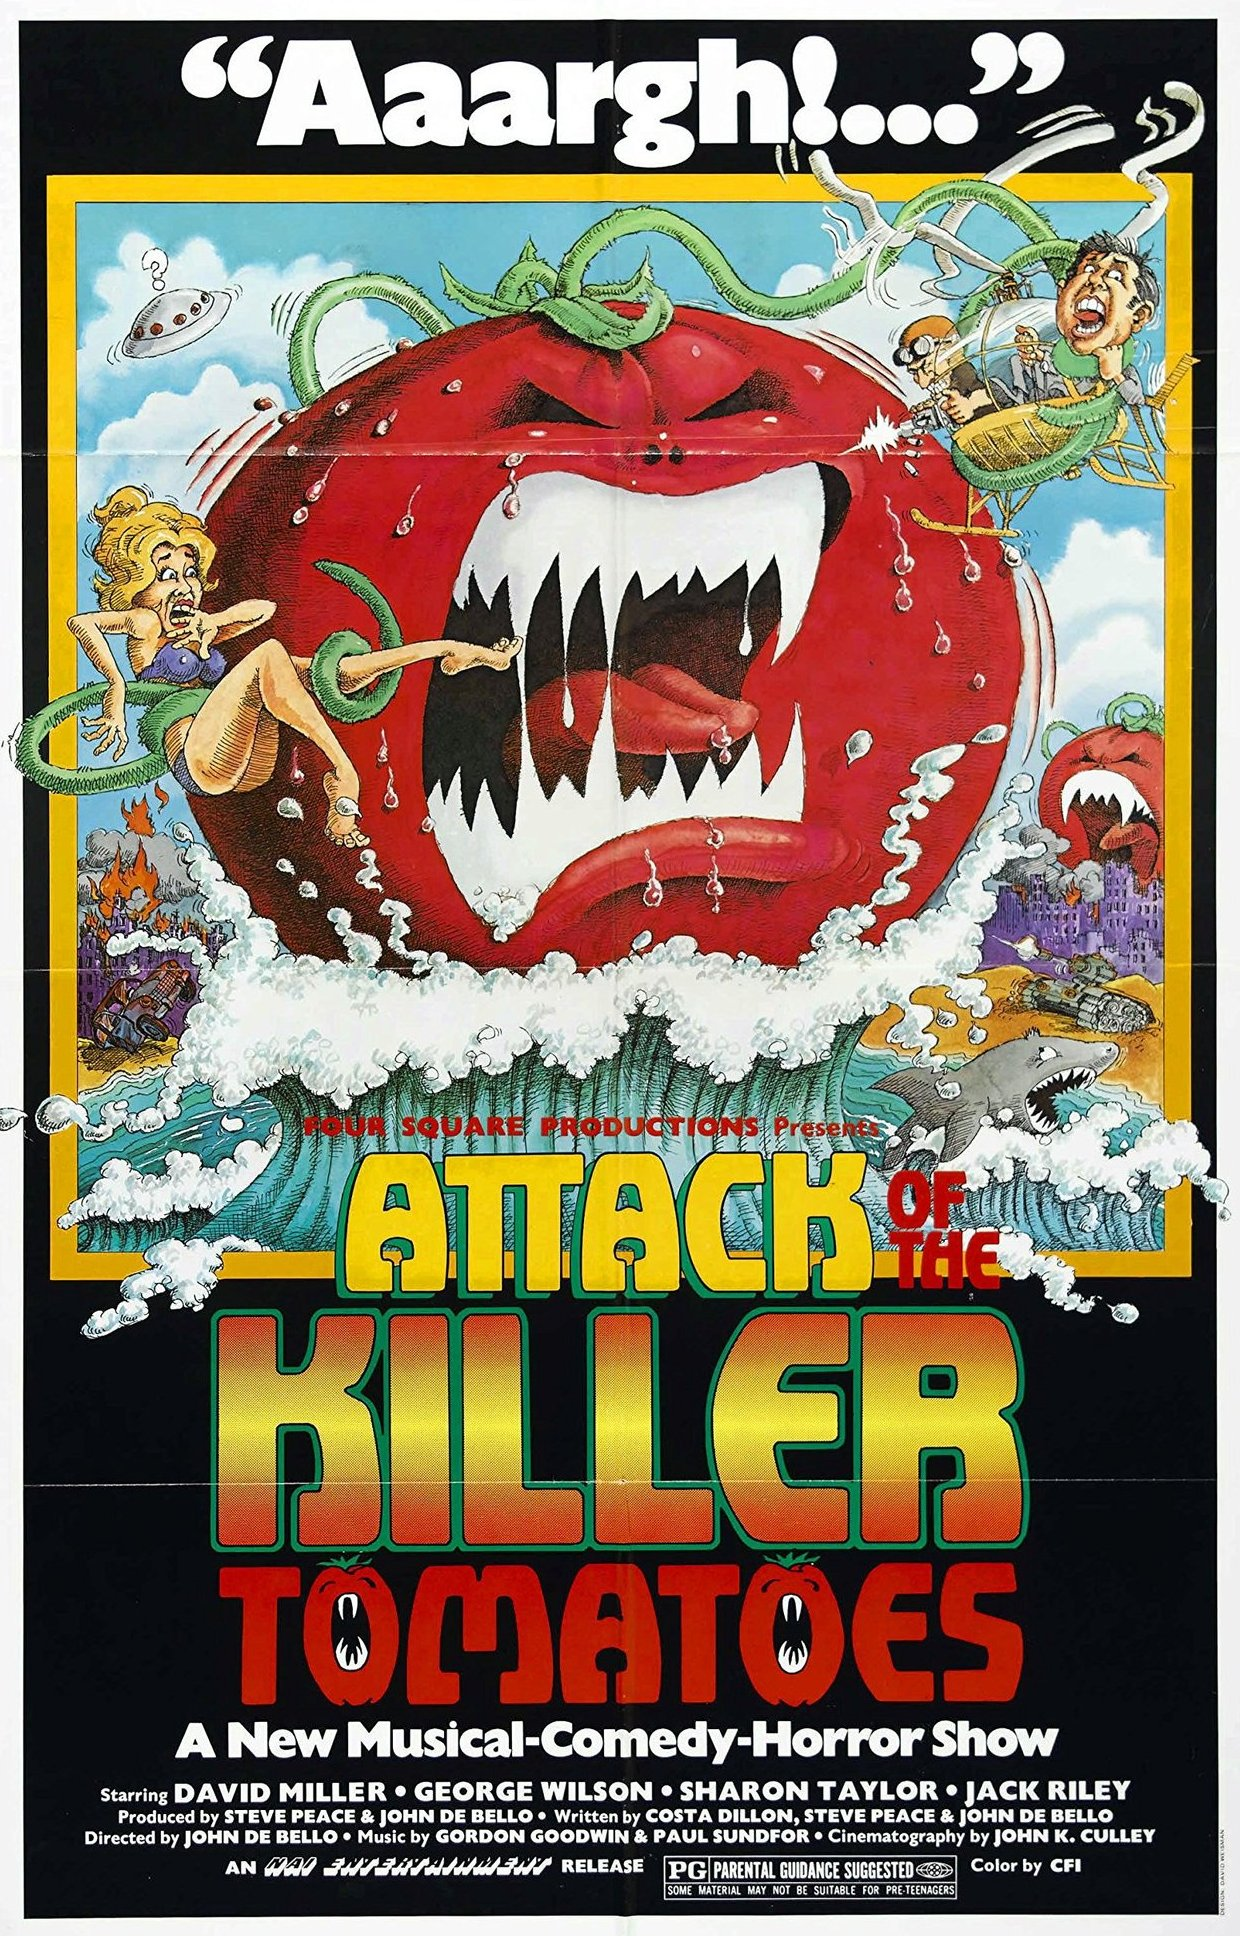 attack of the killer tomatoes - #SDCC18: New ATTACK OF THE KILLER TOMATOES Sows Seeds of Destruction at Comic-Con